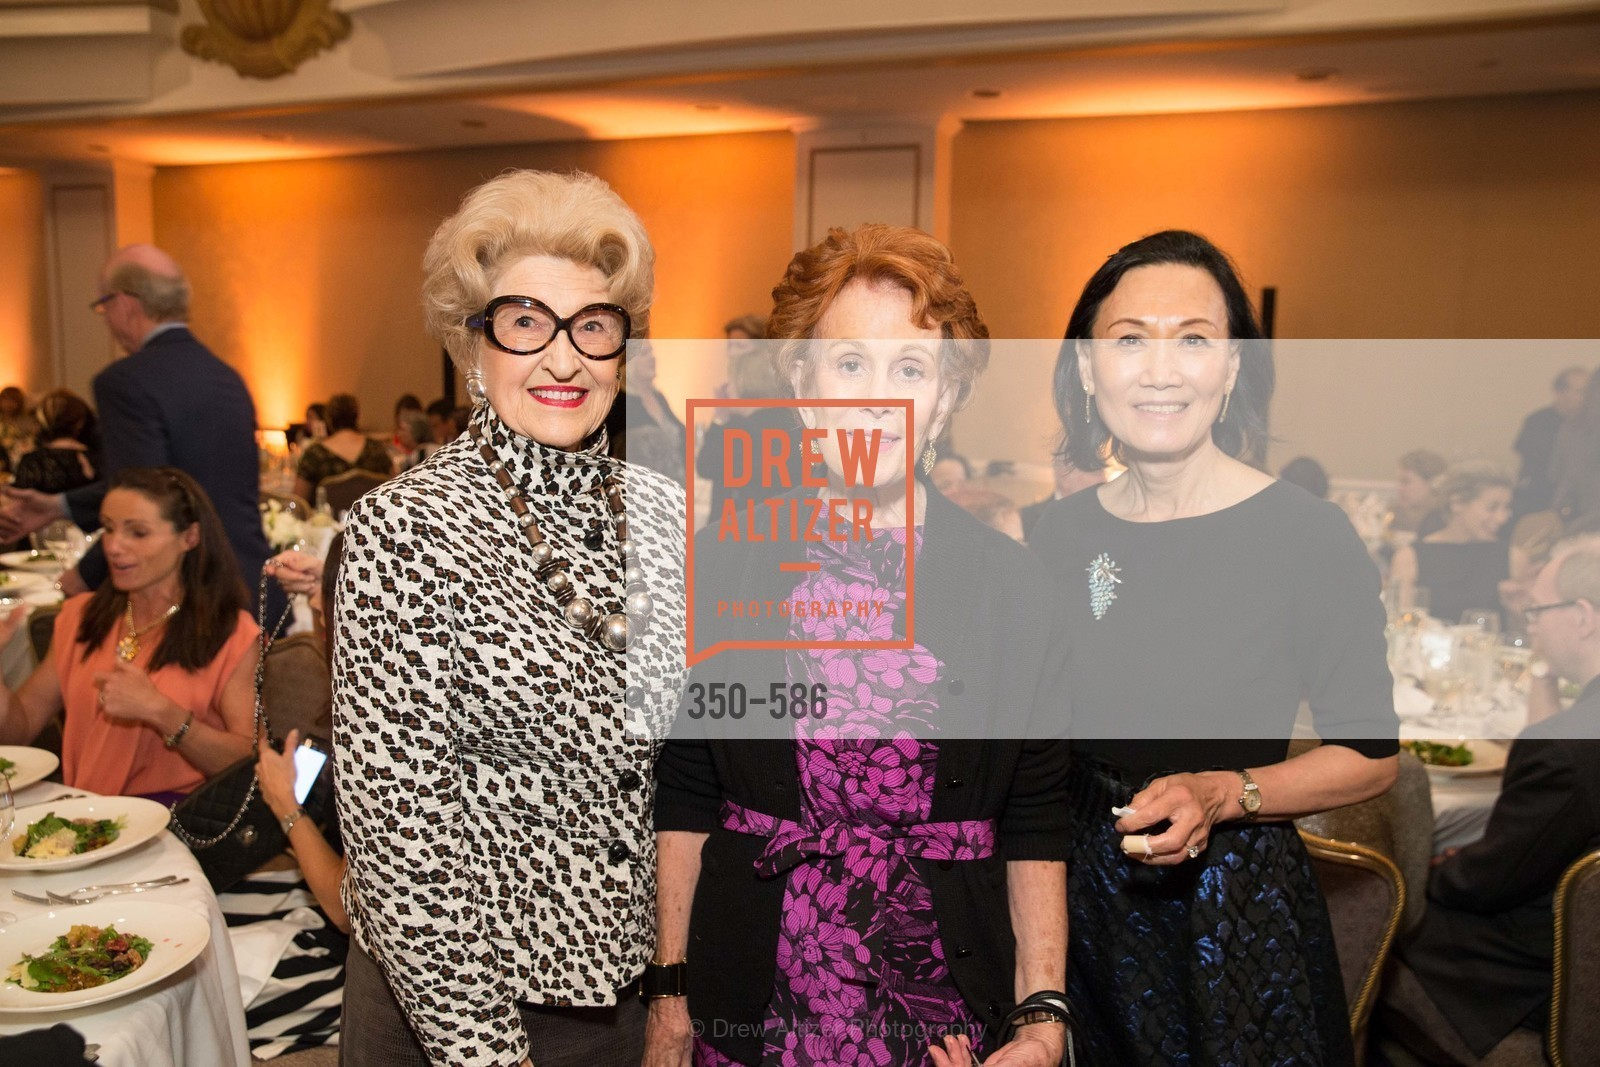 Genelle Relfe, Phoebe Cowles, Iris Chan, 2014 Bay Area ARTHRITIS AUXILLIARY Benefit & Fashion Show, US, October 1st, 2014,Drew Altizer, Drew Altizer Photography, full-service agency, private events, San Francisco photographer, photographer california